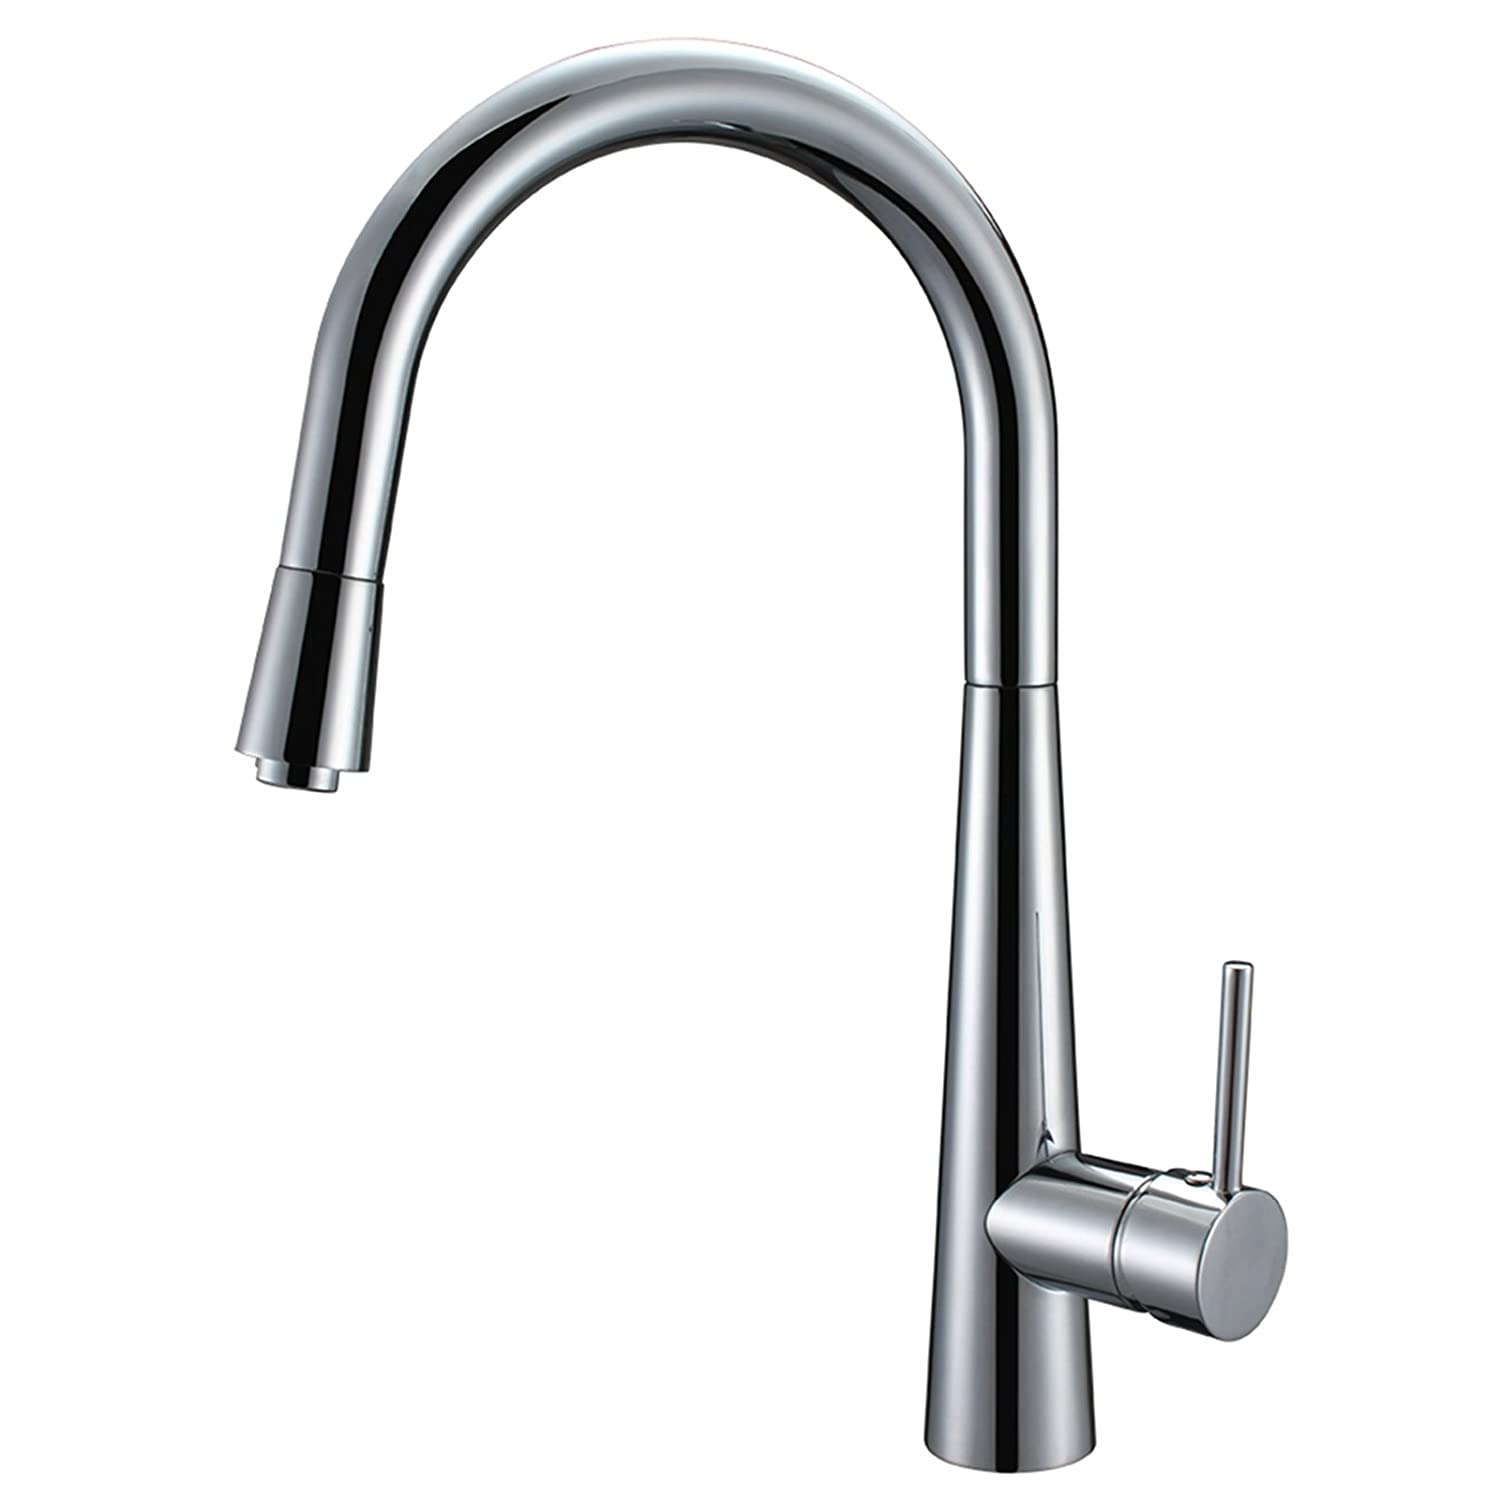 from hot head dhgate product com pull out brass aupai spray faucet kitchen